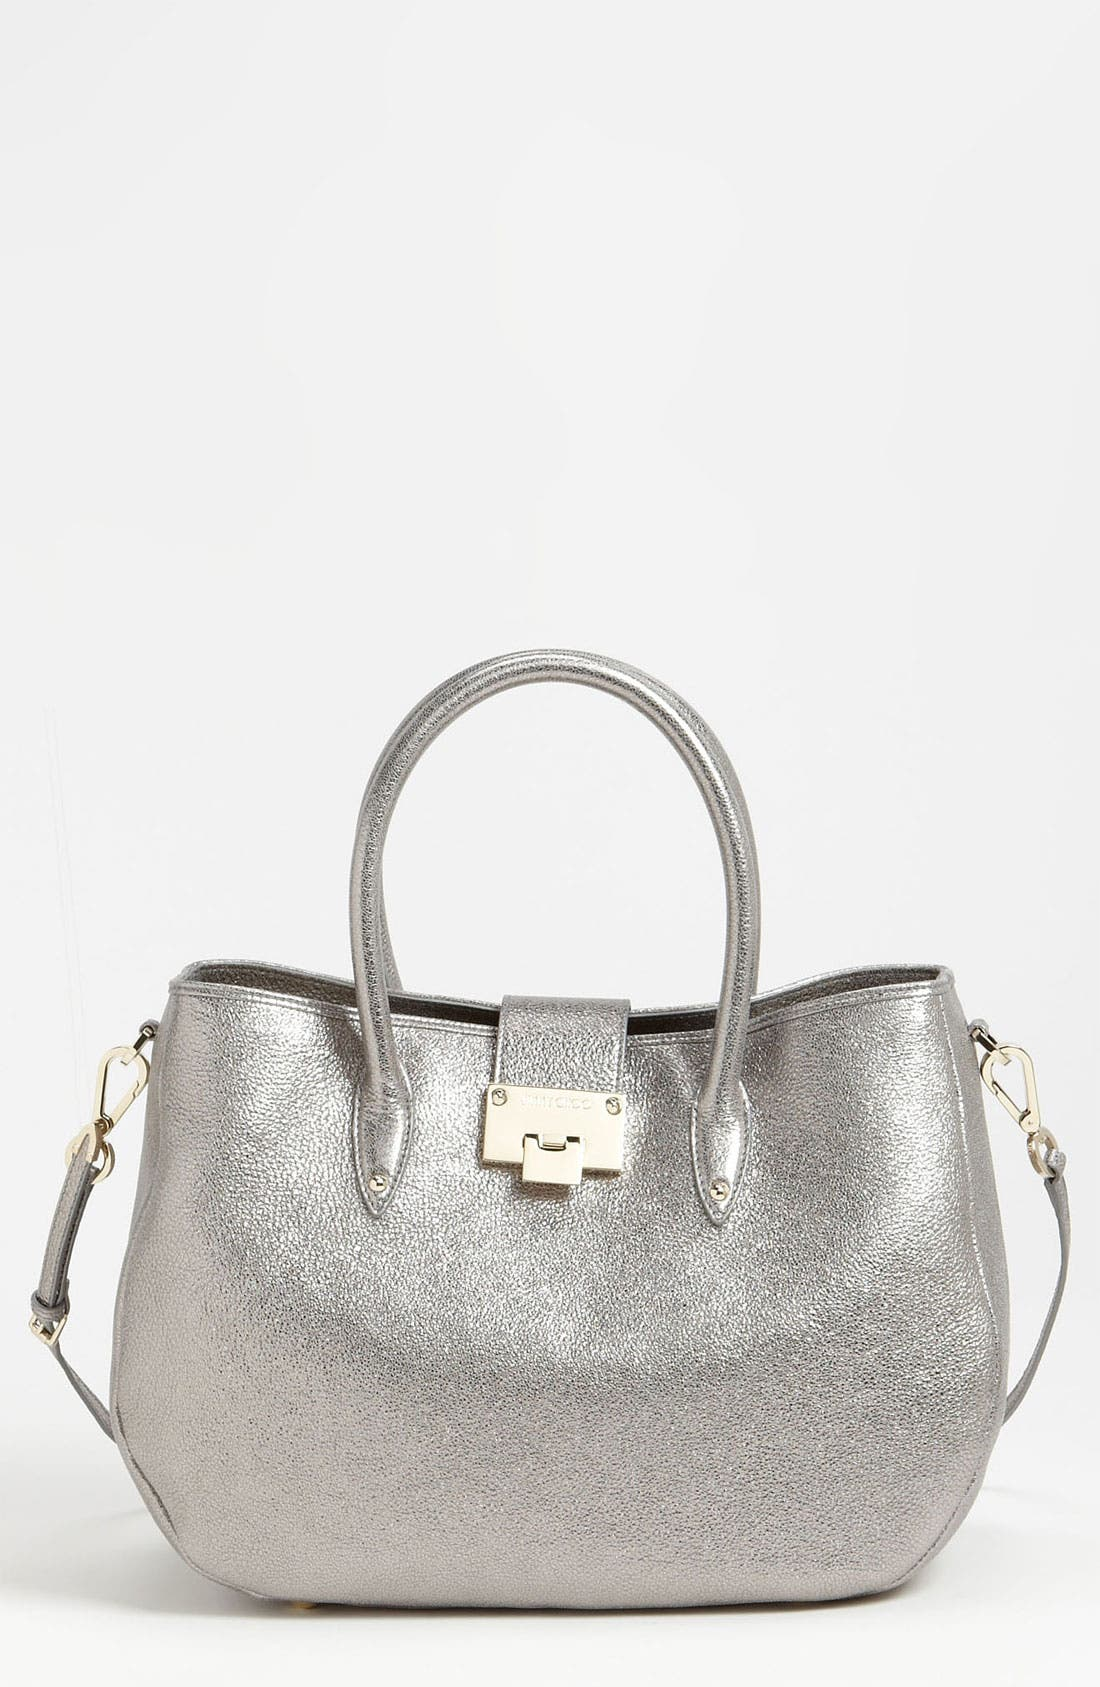 Main Image - Jimmy Choo 'Rania' Glitter Leather Satchel